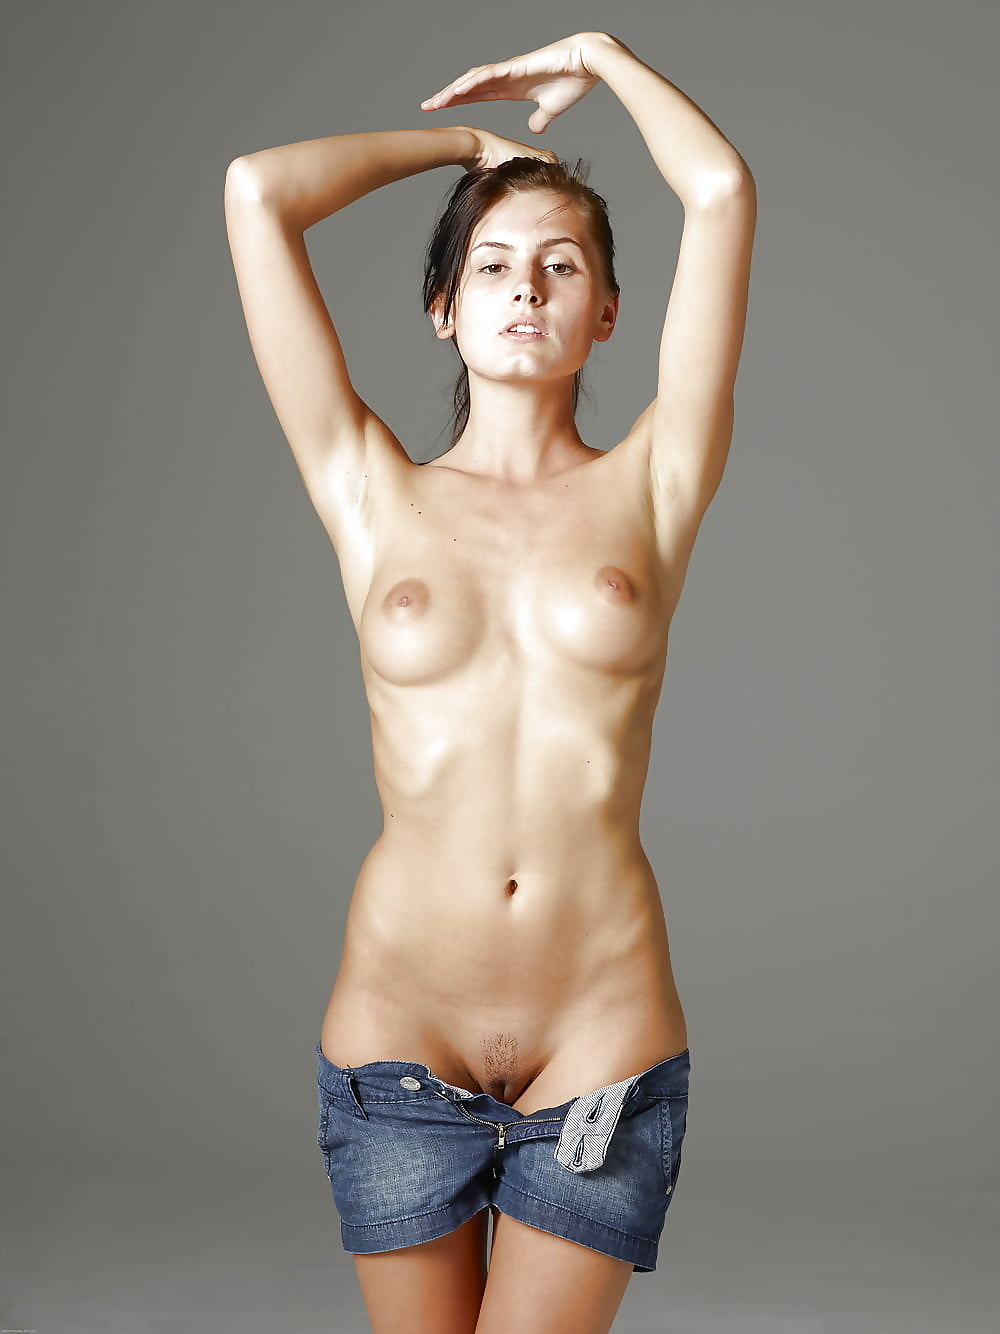 girls-topless-in-pants-girlfriend-holiday-photo-sex